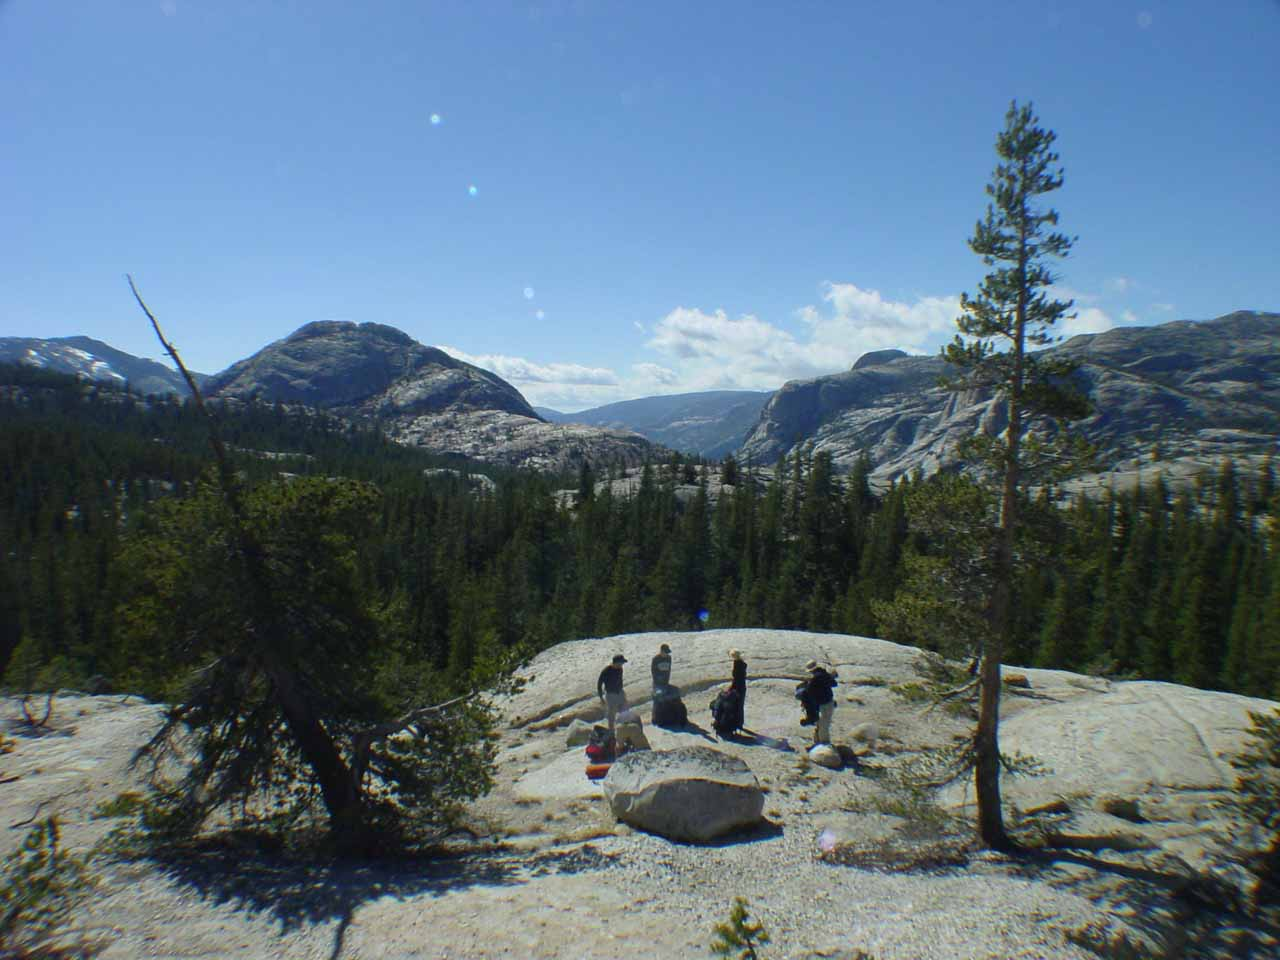 Now the terrain became more granite as we left Tuolumne Meadows